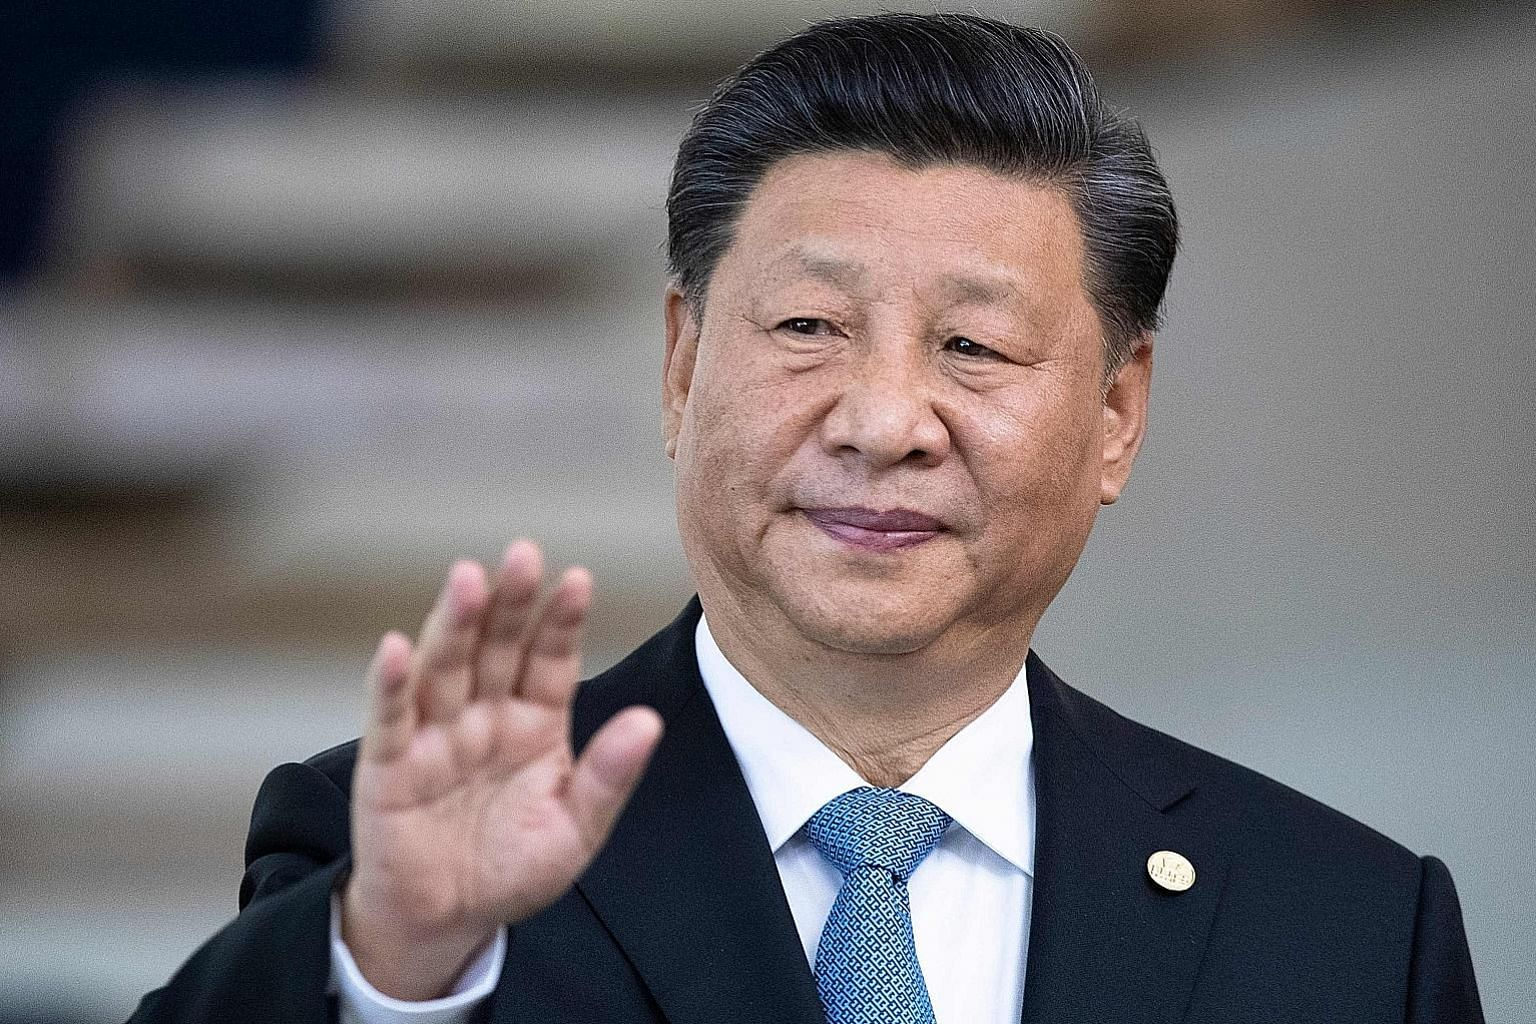 Only 29 per cent of those polled in Japan, South Korea, the Philippines, Indonesia, India and Australia say they have confidence in President Xi Jinping when it comes to world affairs. PHOTO: AGENCE FRANCE-PRESSE